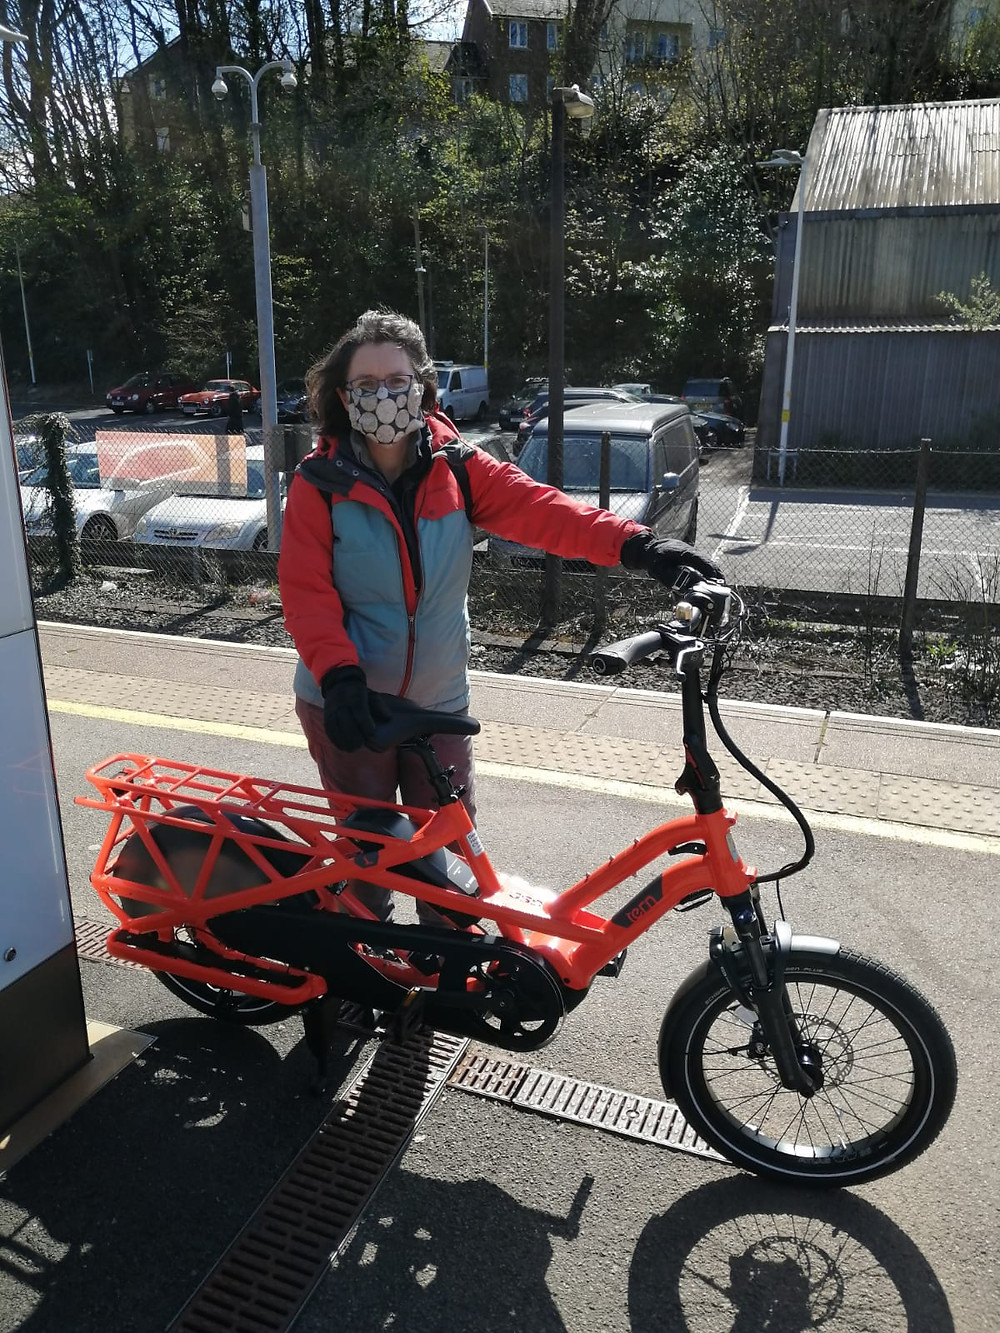 Person standing behind a bicycle holding the seat and handlebars. They are on a grey platform at a railway station. The person has shoulder length brown hair, a black and brown facemask on and blue glasses. They are wearing a red and blue zipped rain coat and grey tight fitting trousers. The bike is bright orange and has a frame that extends to a rack at the back.